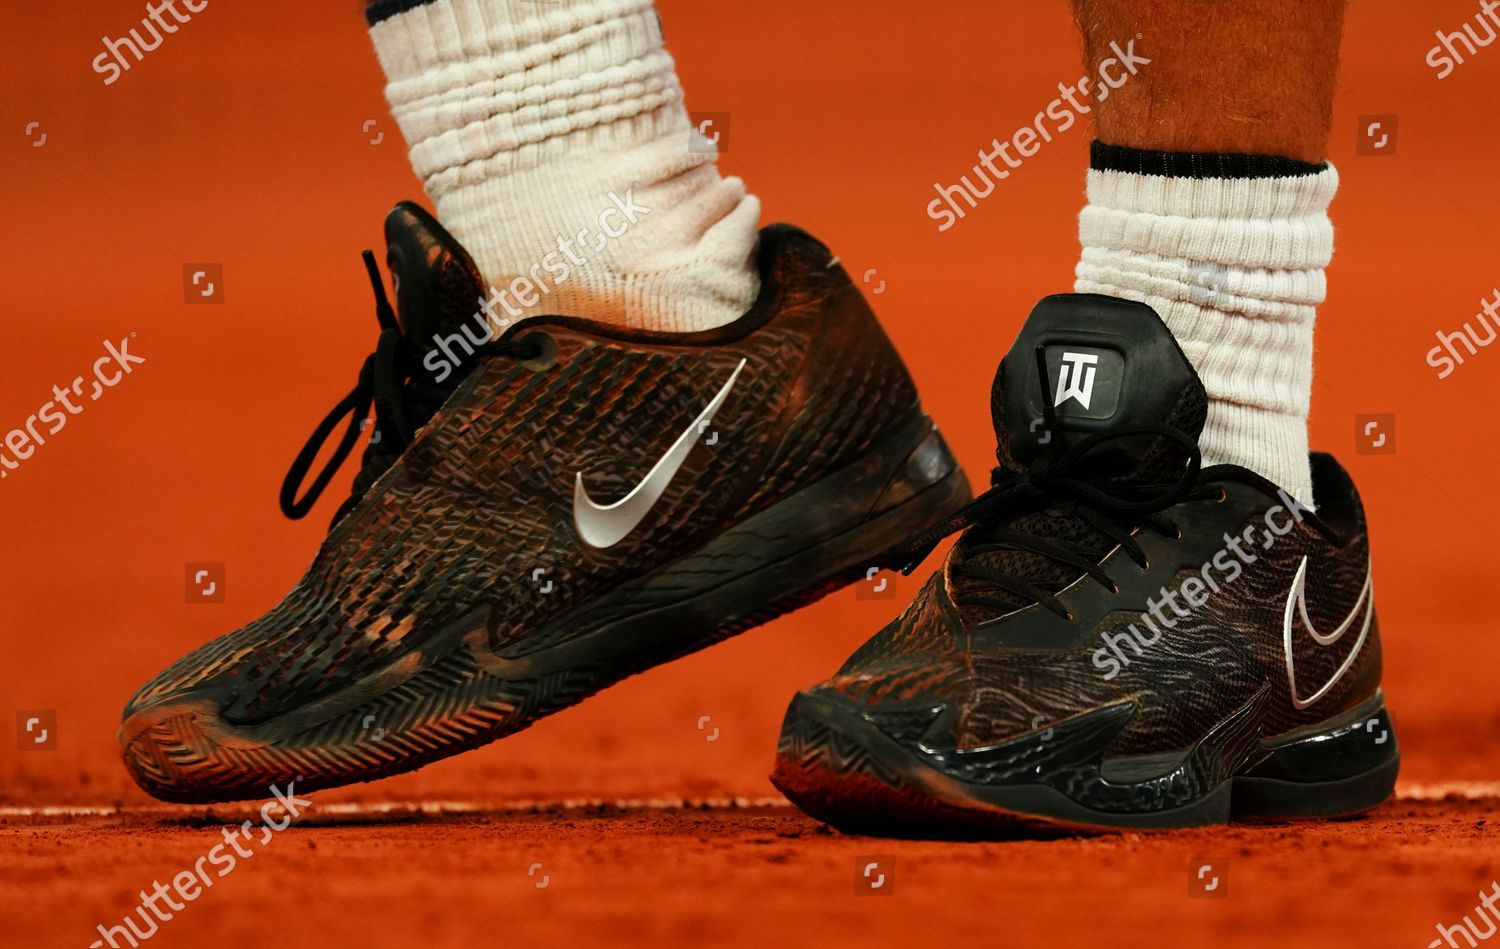 Nike Shoes Rafael Nadal Spain He Practices Editorial Stock Photo Stock Image Shutterstock